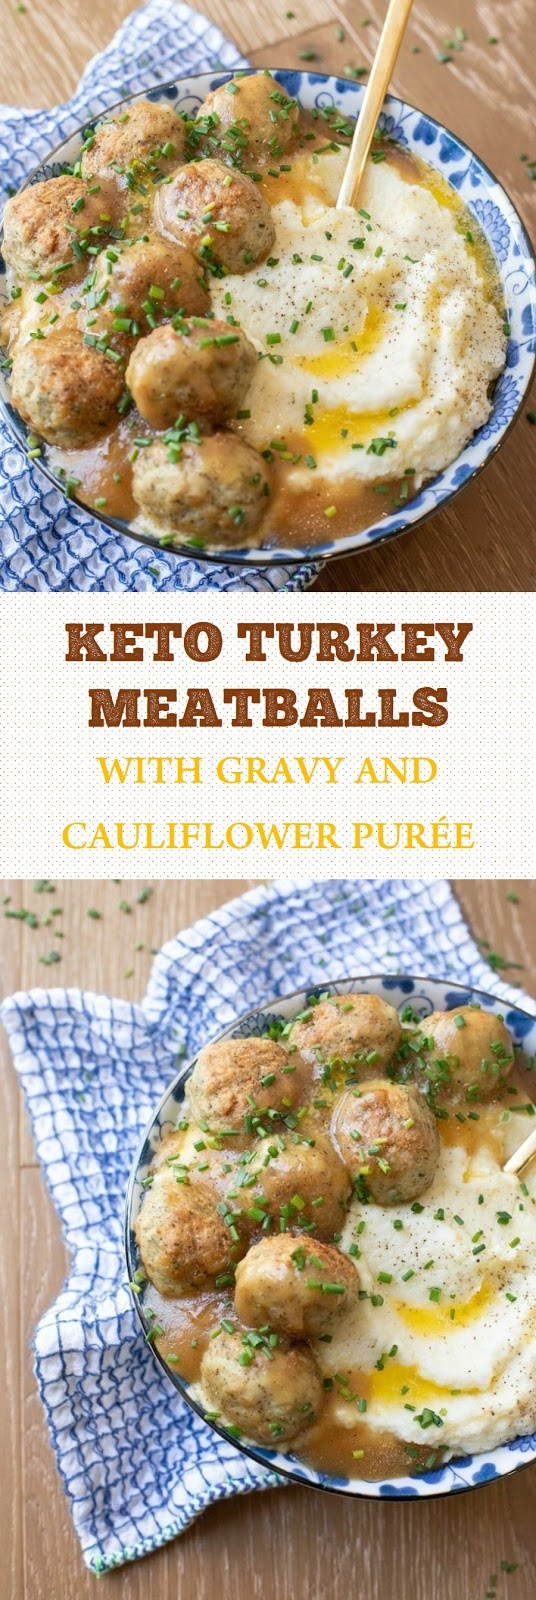 Keto Turkey Meatballs With Gravy and Cauliflower Purée